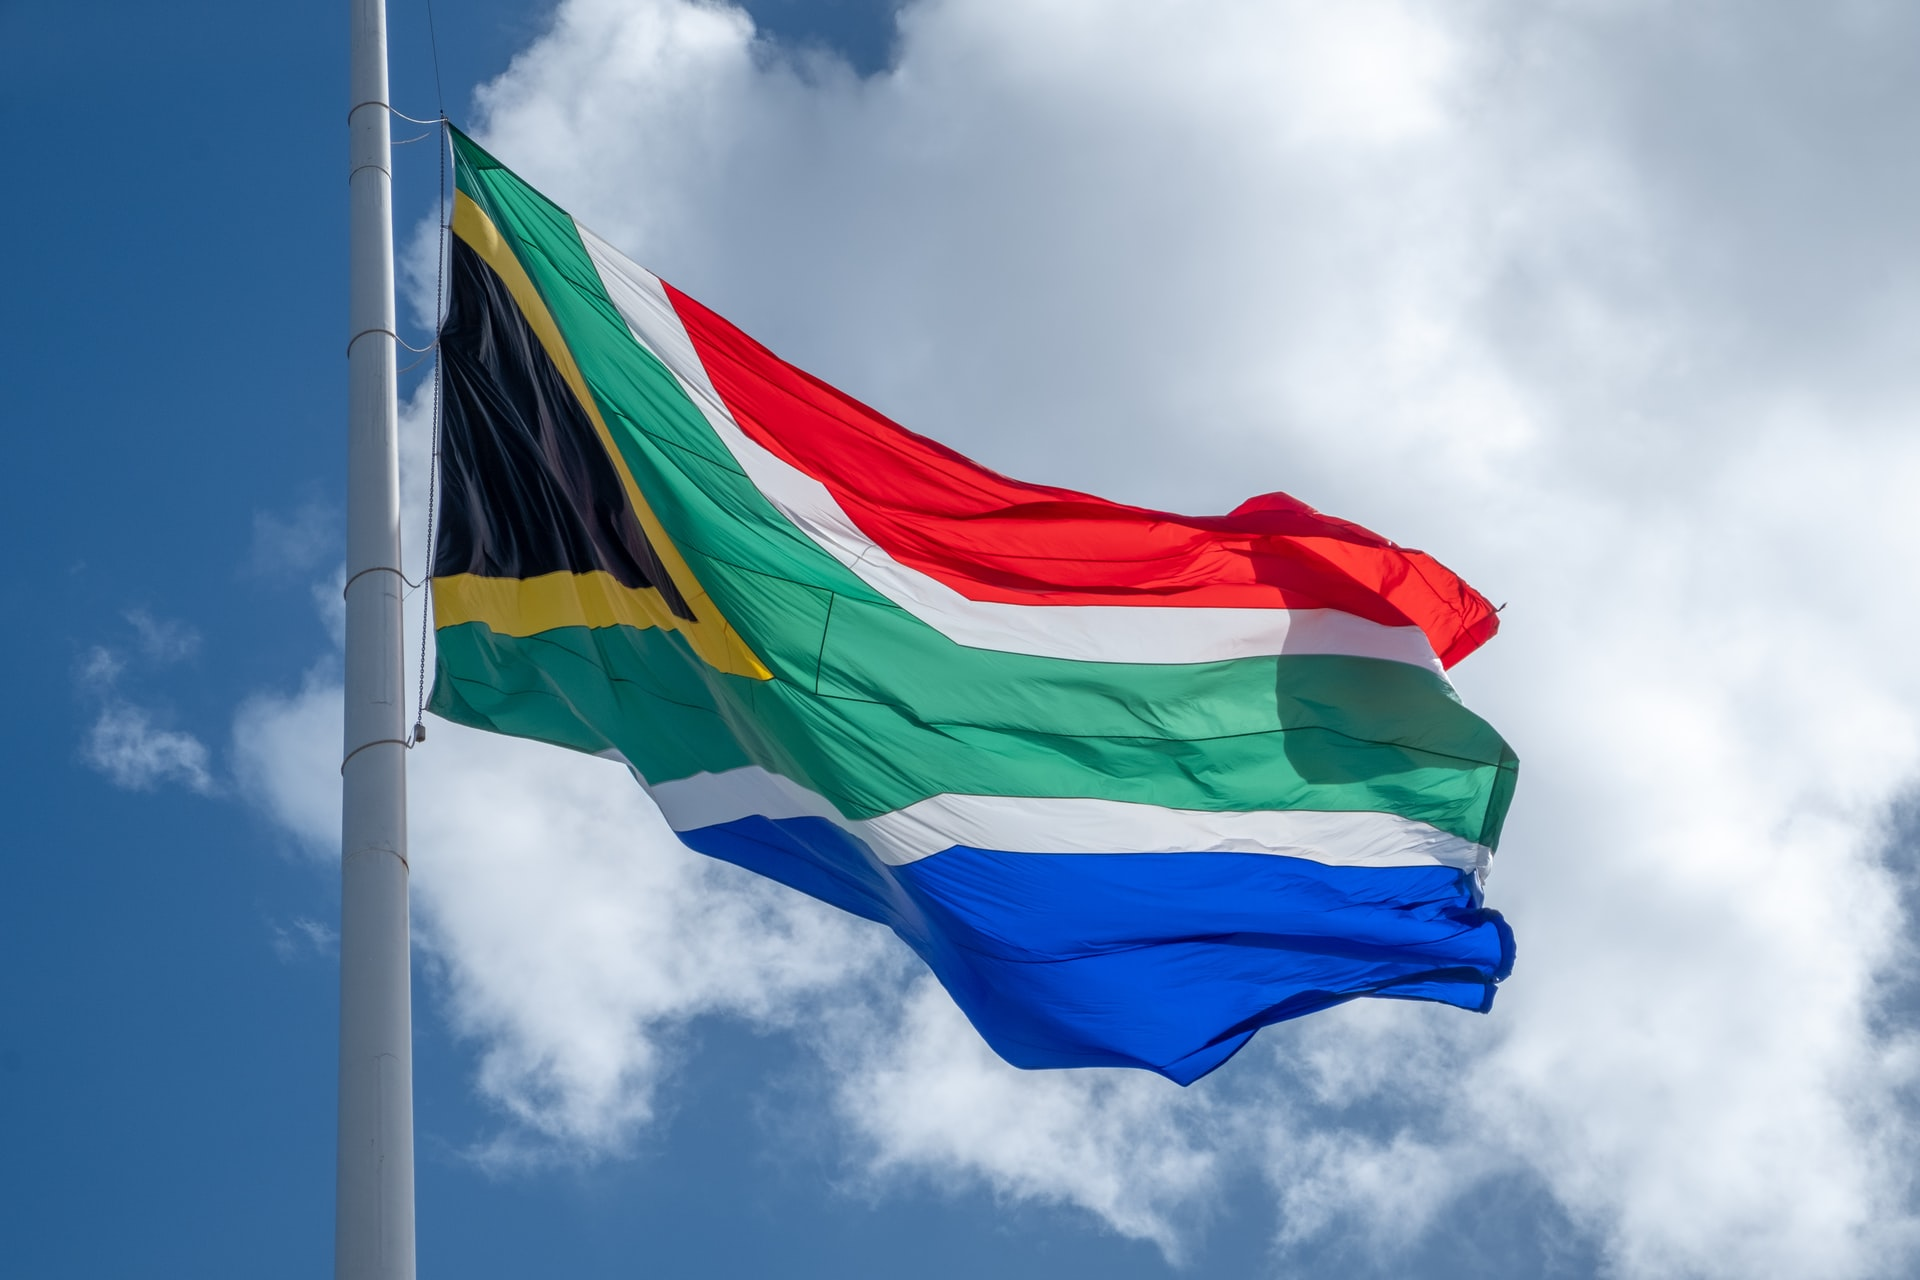 South African Banks Block Crypto Trading on International Exchanges: Report